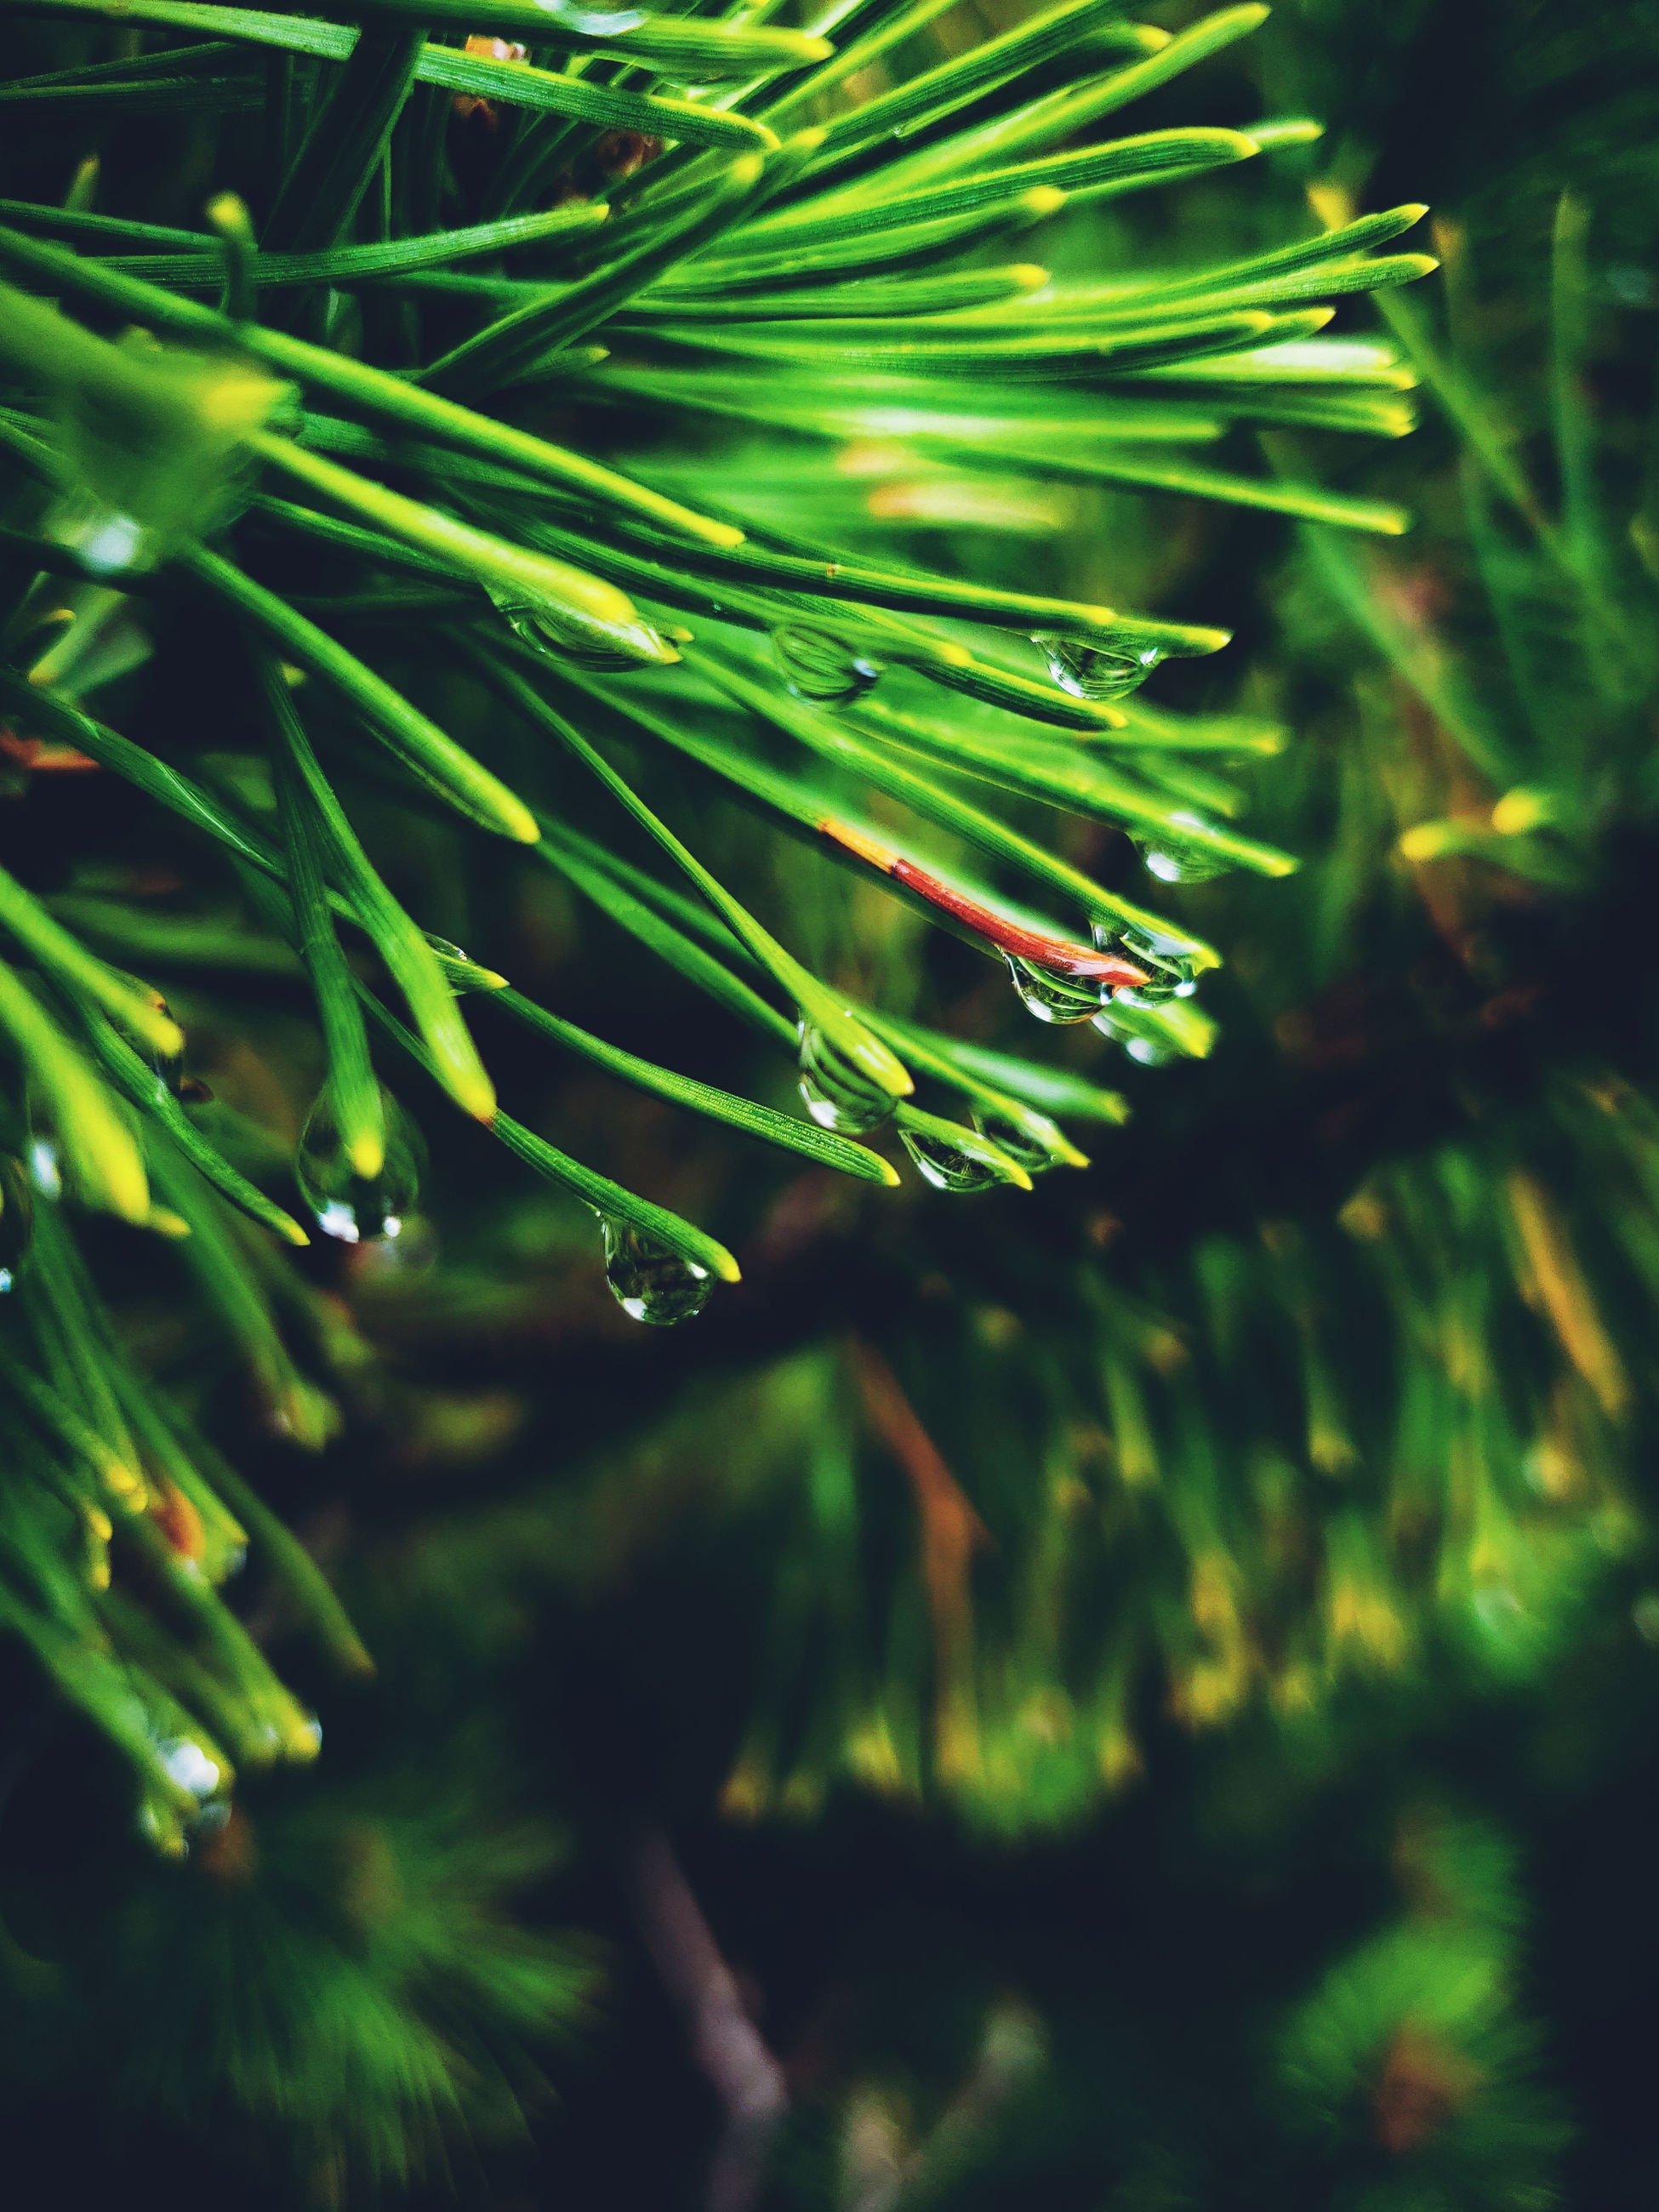 plant, green color, growth, beauty in nature, selective focus, close-up, day, nature, no people, tree, tranquility, outdoors, branch, pine tree, leaf, focus on foreground, plant part, needle - plant part, freshness, coniferous tree, fir tree